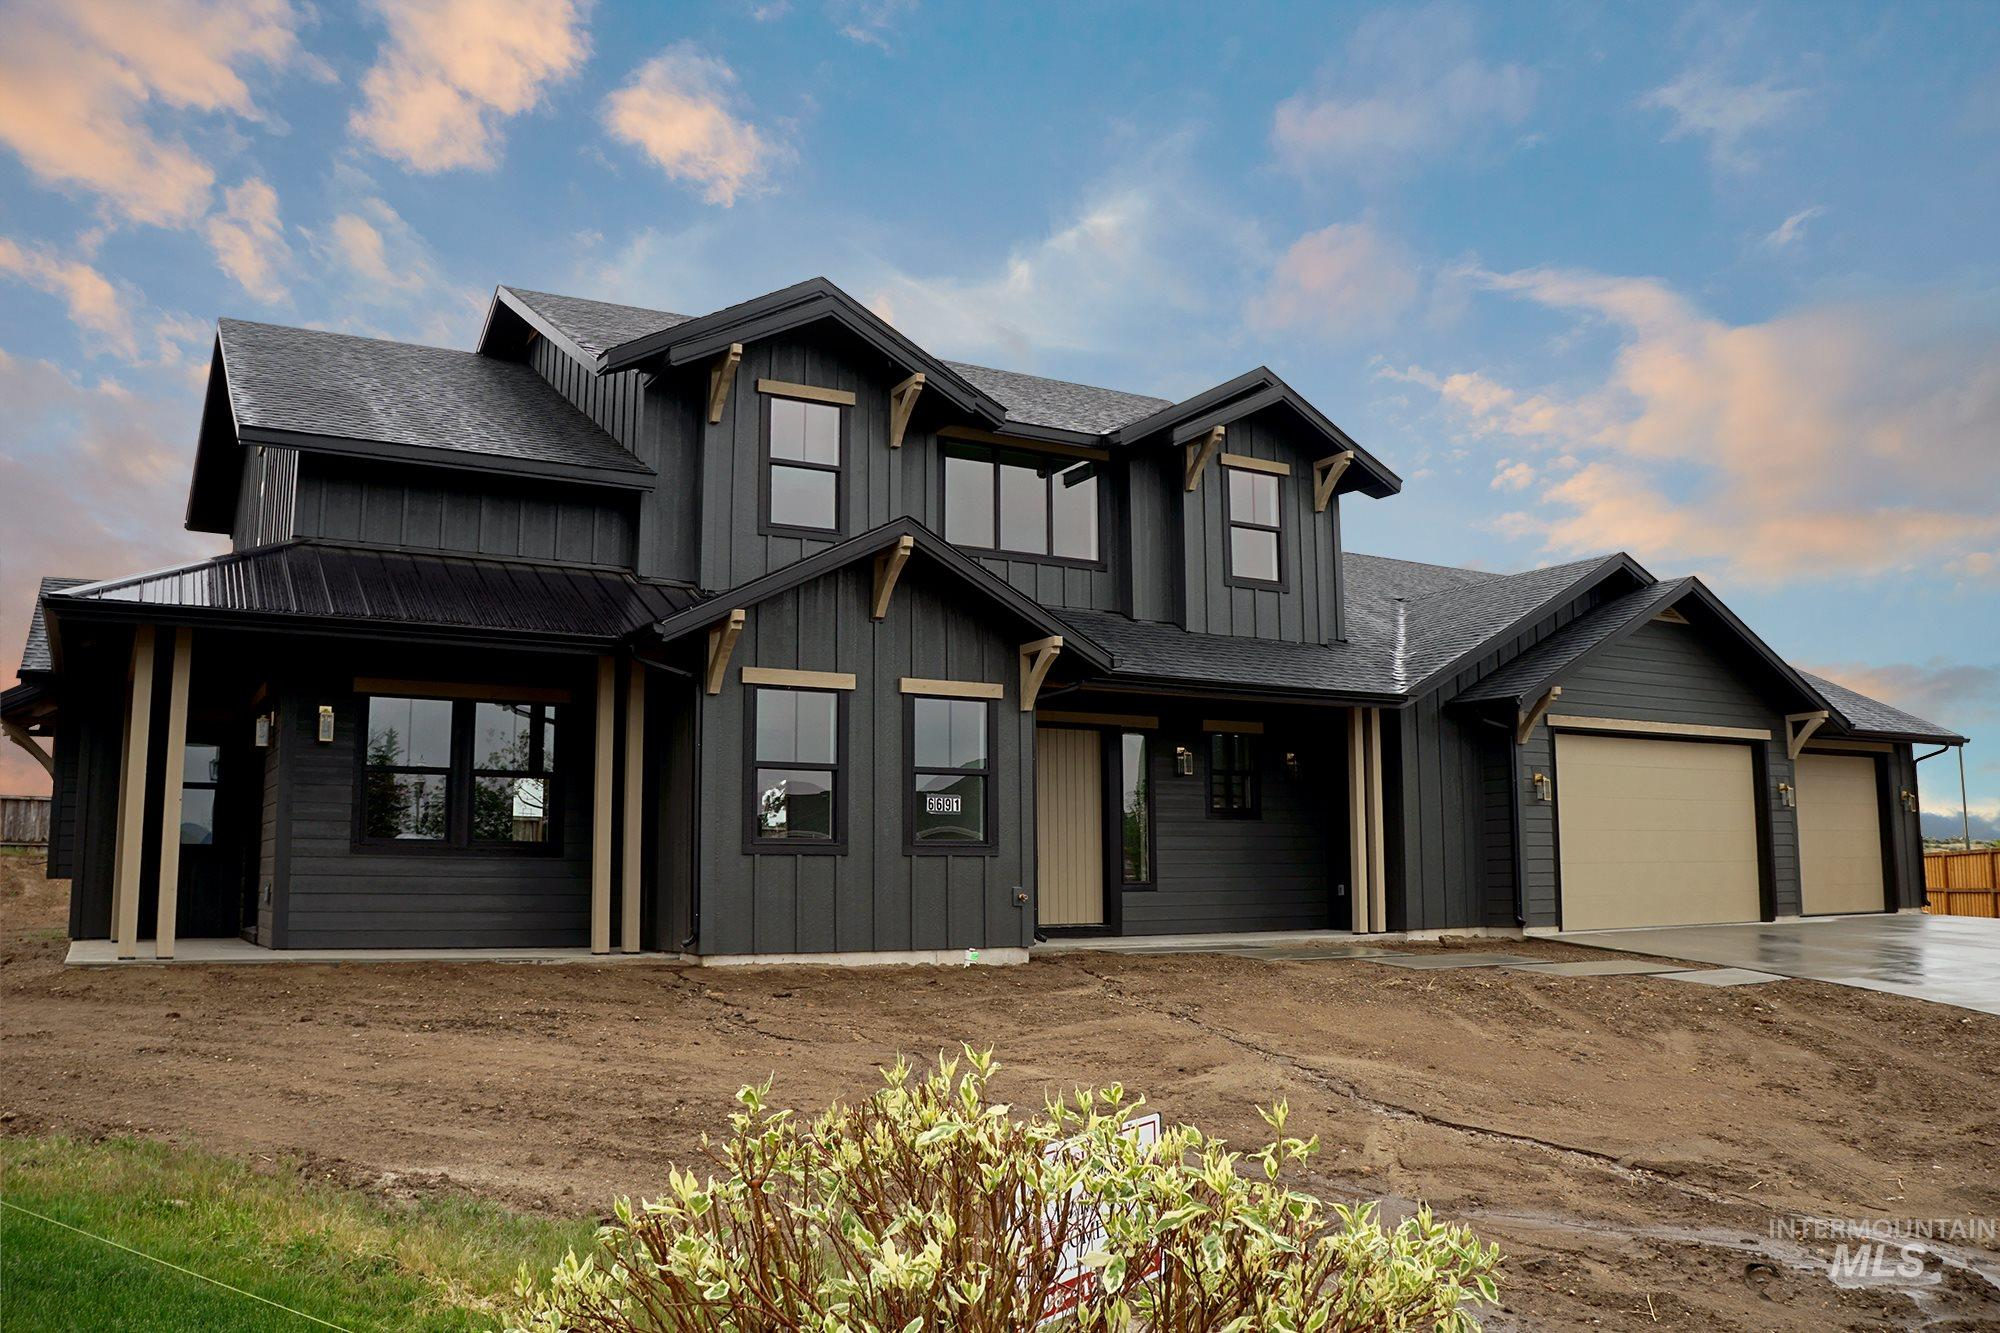 Huge lot .42 acre off cul-da-sac w/views in East Boise! Unique Modern Farmhouse flair w/designer finishes. Family size kitchen w/large center island Bosch SS appl. double ovens, ample dovetail soft close cabinetry, slab quartz & farm style sink. Open living & dining layout, private office, rec room upstairs, + hobby rm.  Rare details abound. Main-level master suite, his & hers closets. Full bath off the massive 1233 SF garage +room for extra parking. 10 mins to downtown, BOI Airport, Trails, & Lucky Peak